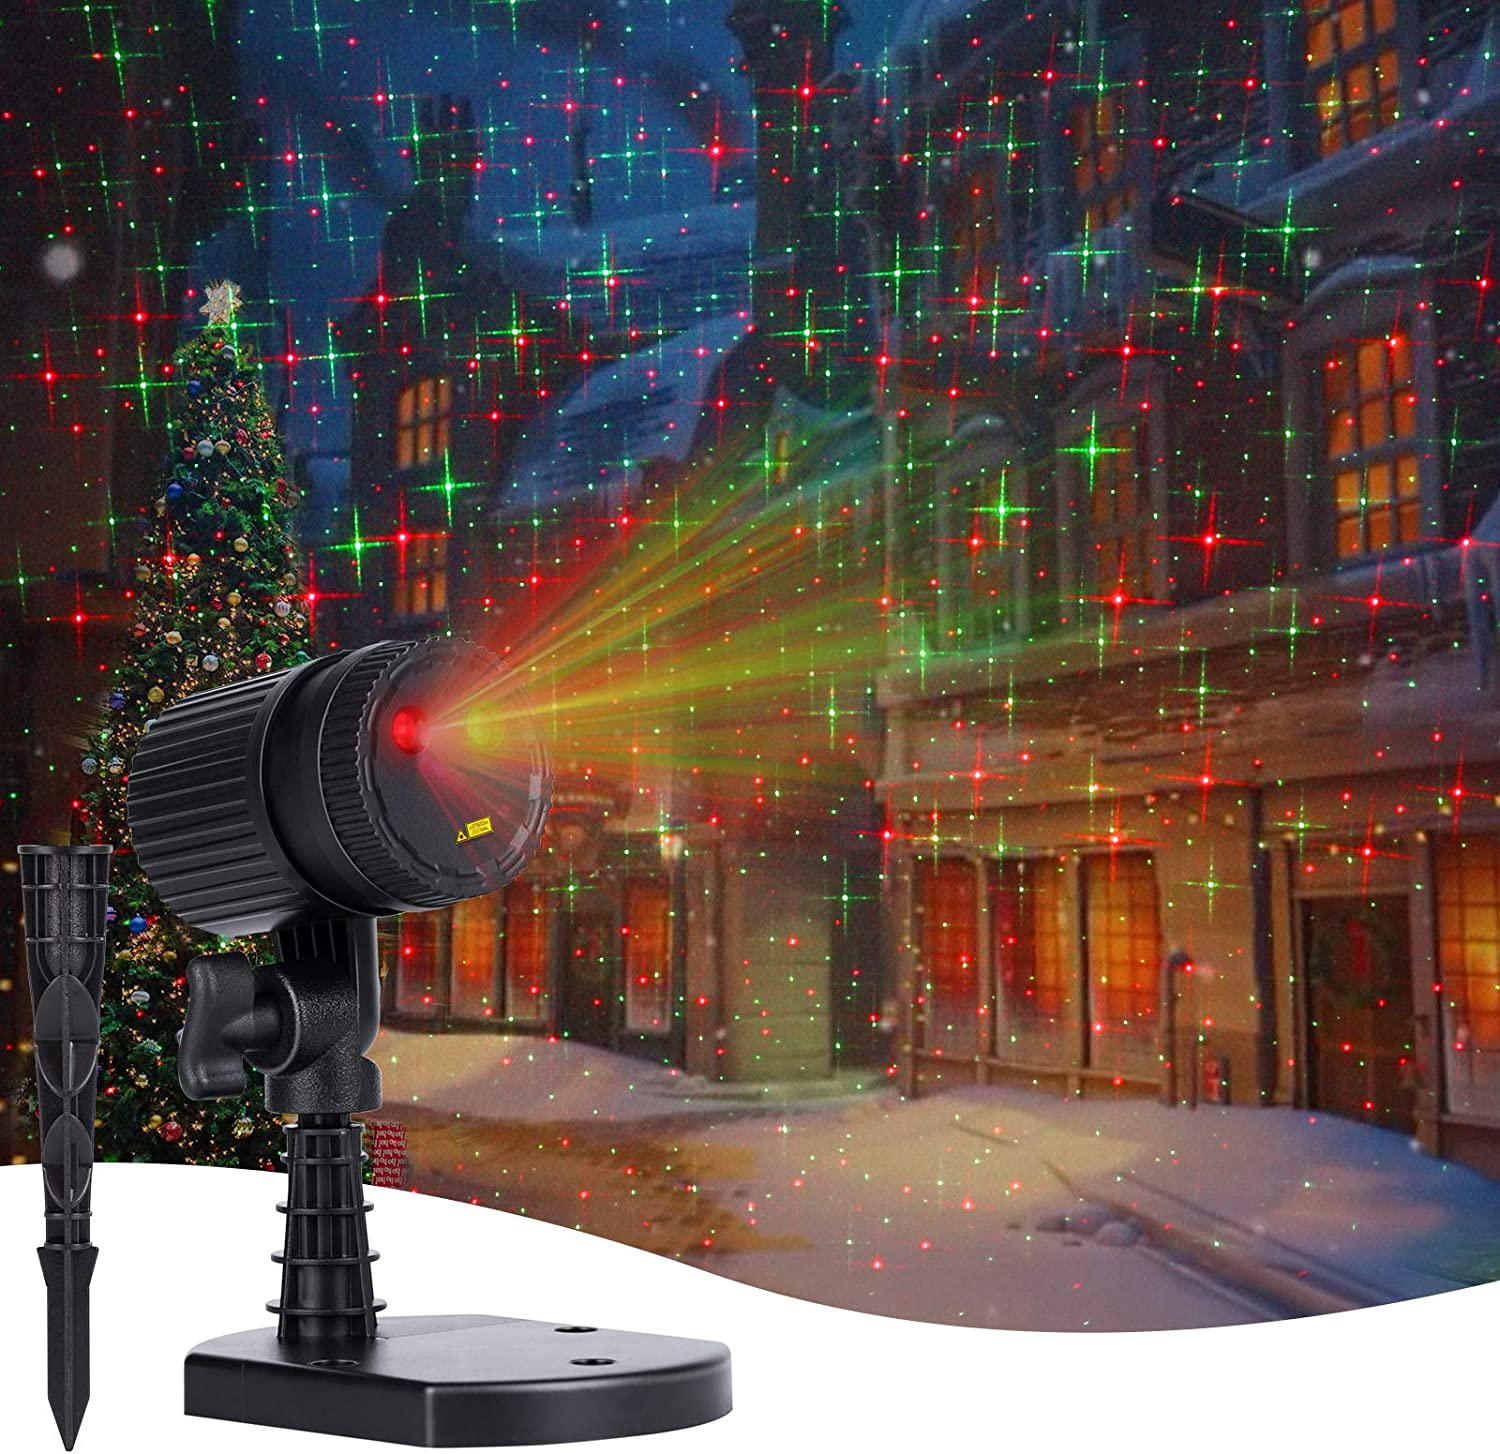 Christmas LED Projector Lights Outdoor Red /& Green Starry Projection Light 3 Working Modes Waterproof Plug in Mountable for Holiday House Indoor Outdoor Party New Year Decoration